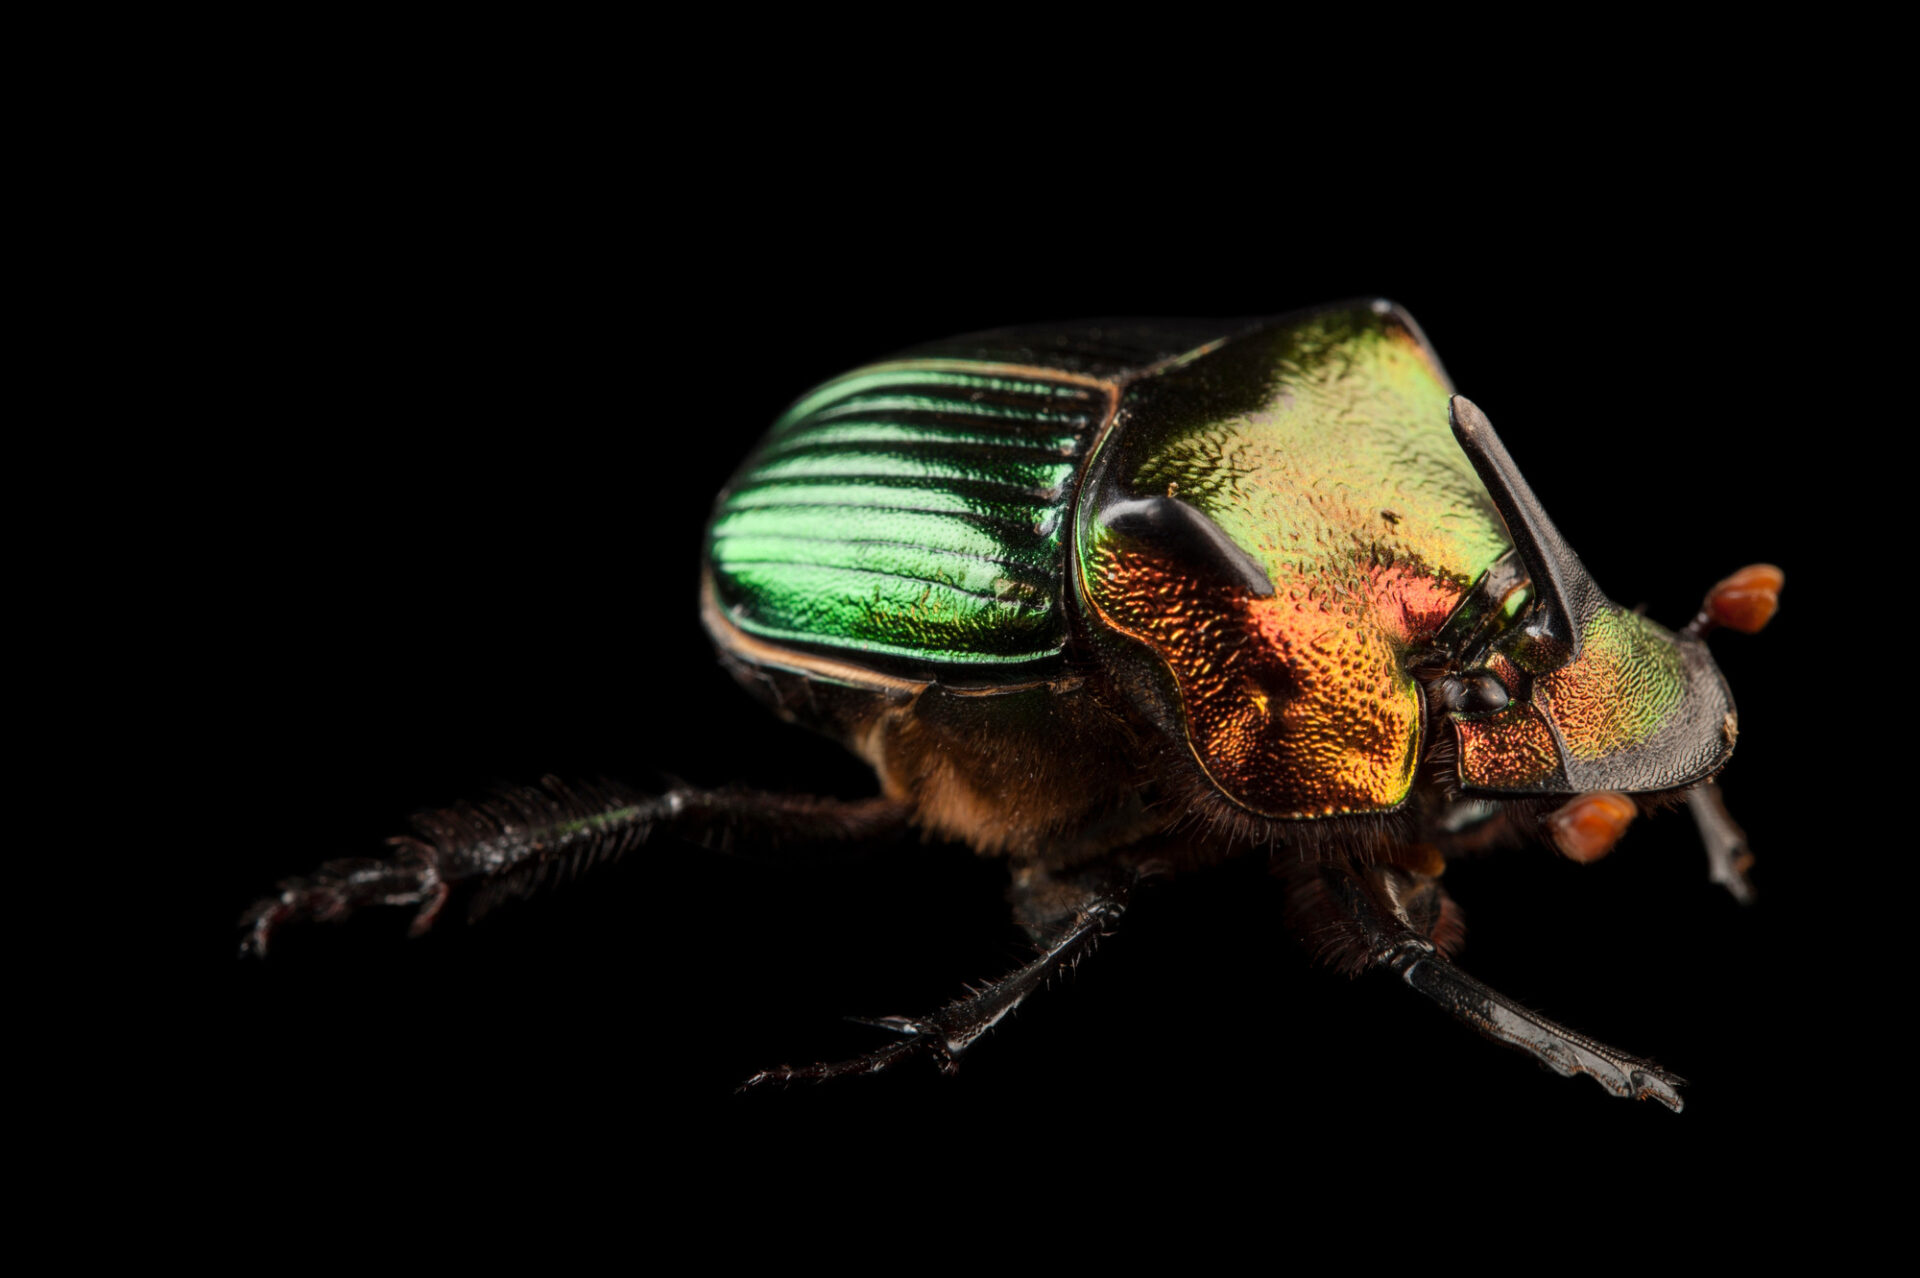 Photo: A rainbow scarab (Phanaeus igneus) at the Audubon Insectarium in New Orleans.